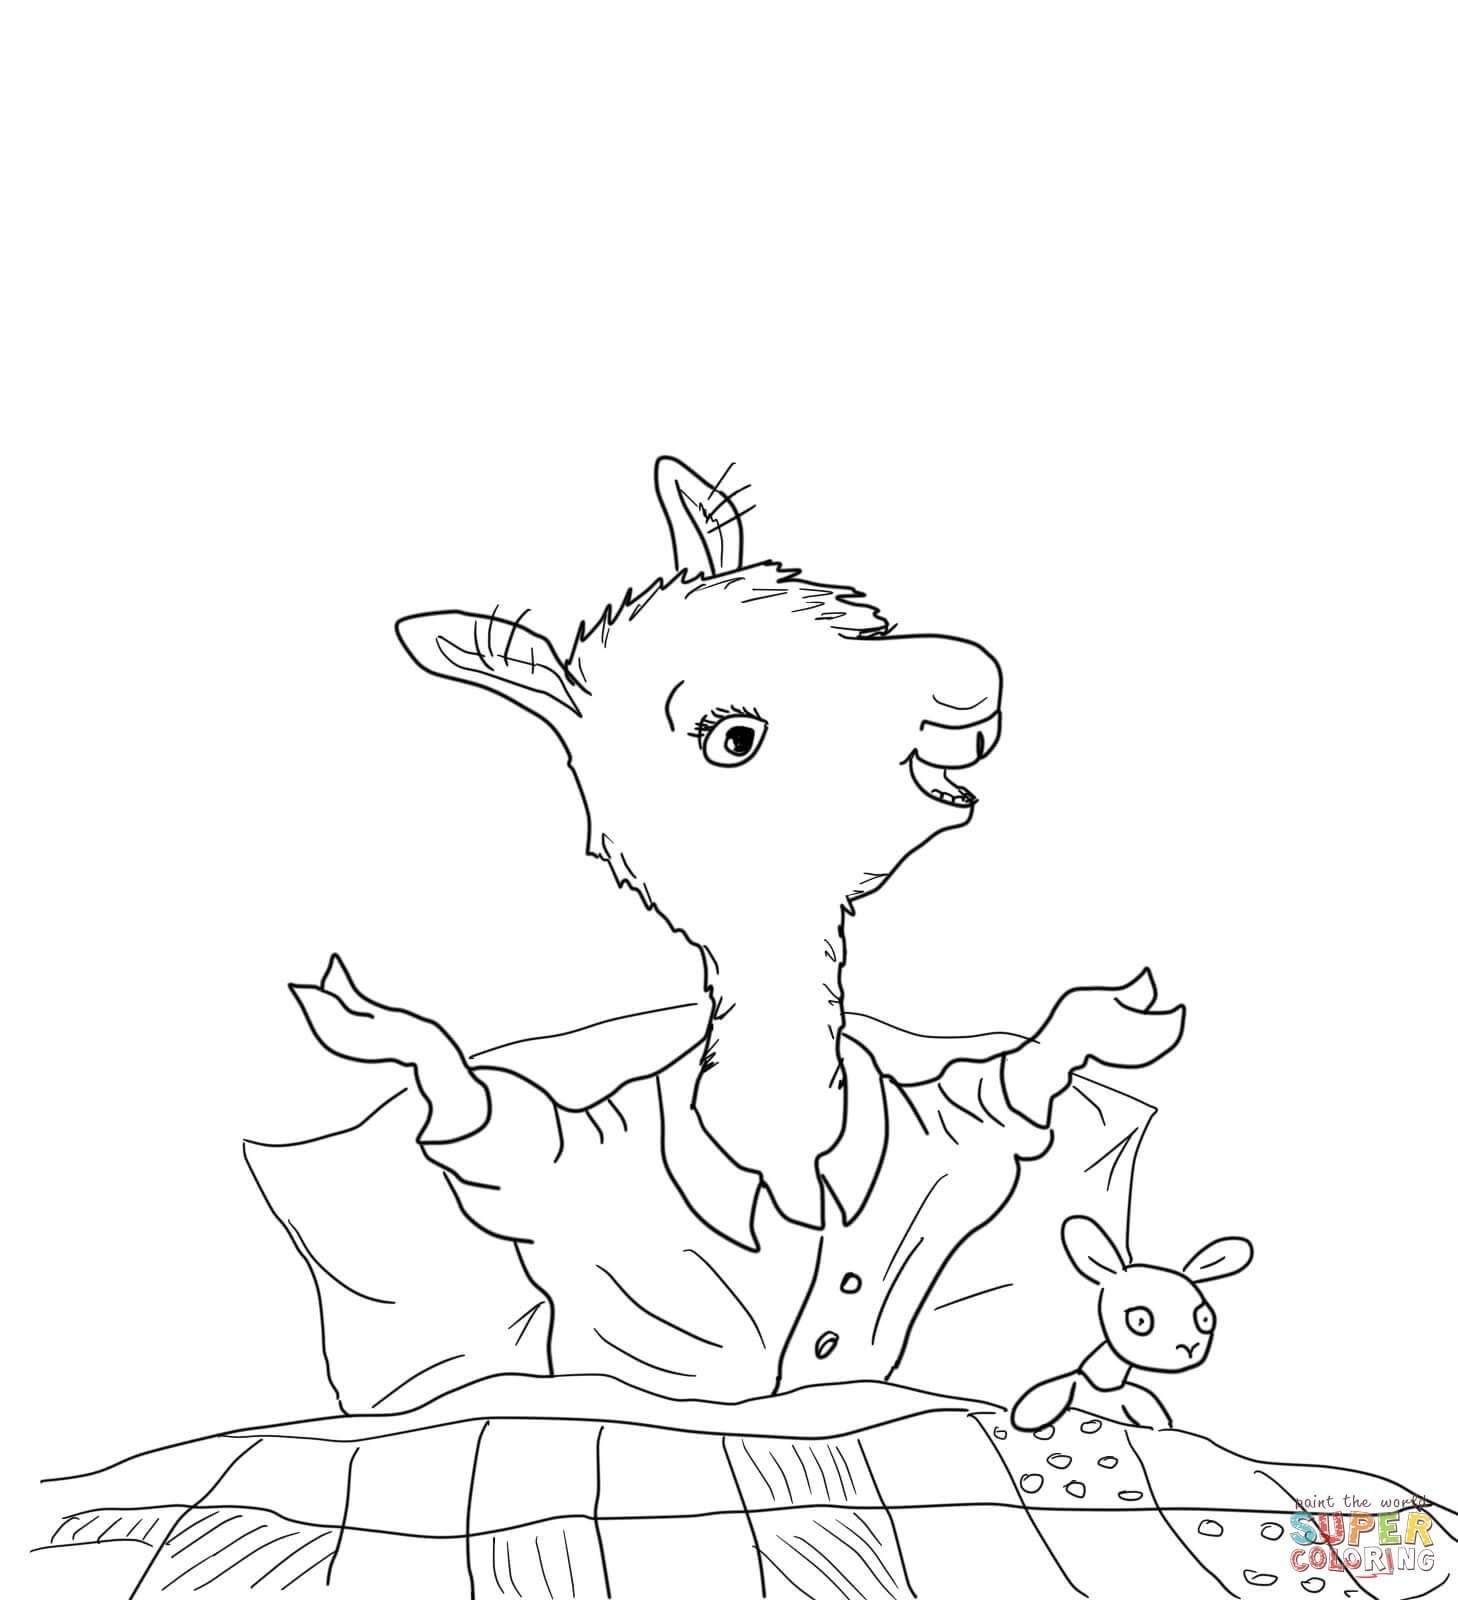 Llama Home With Mama Coloring Page From Category Select 27007 Printable